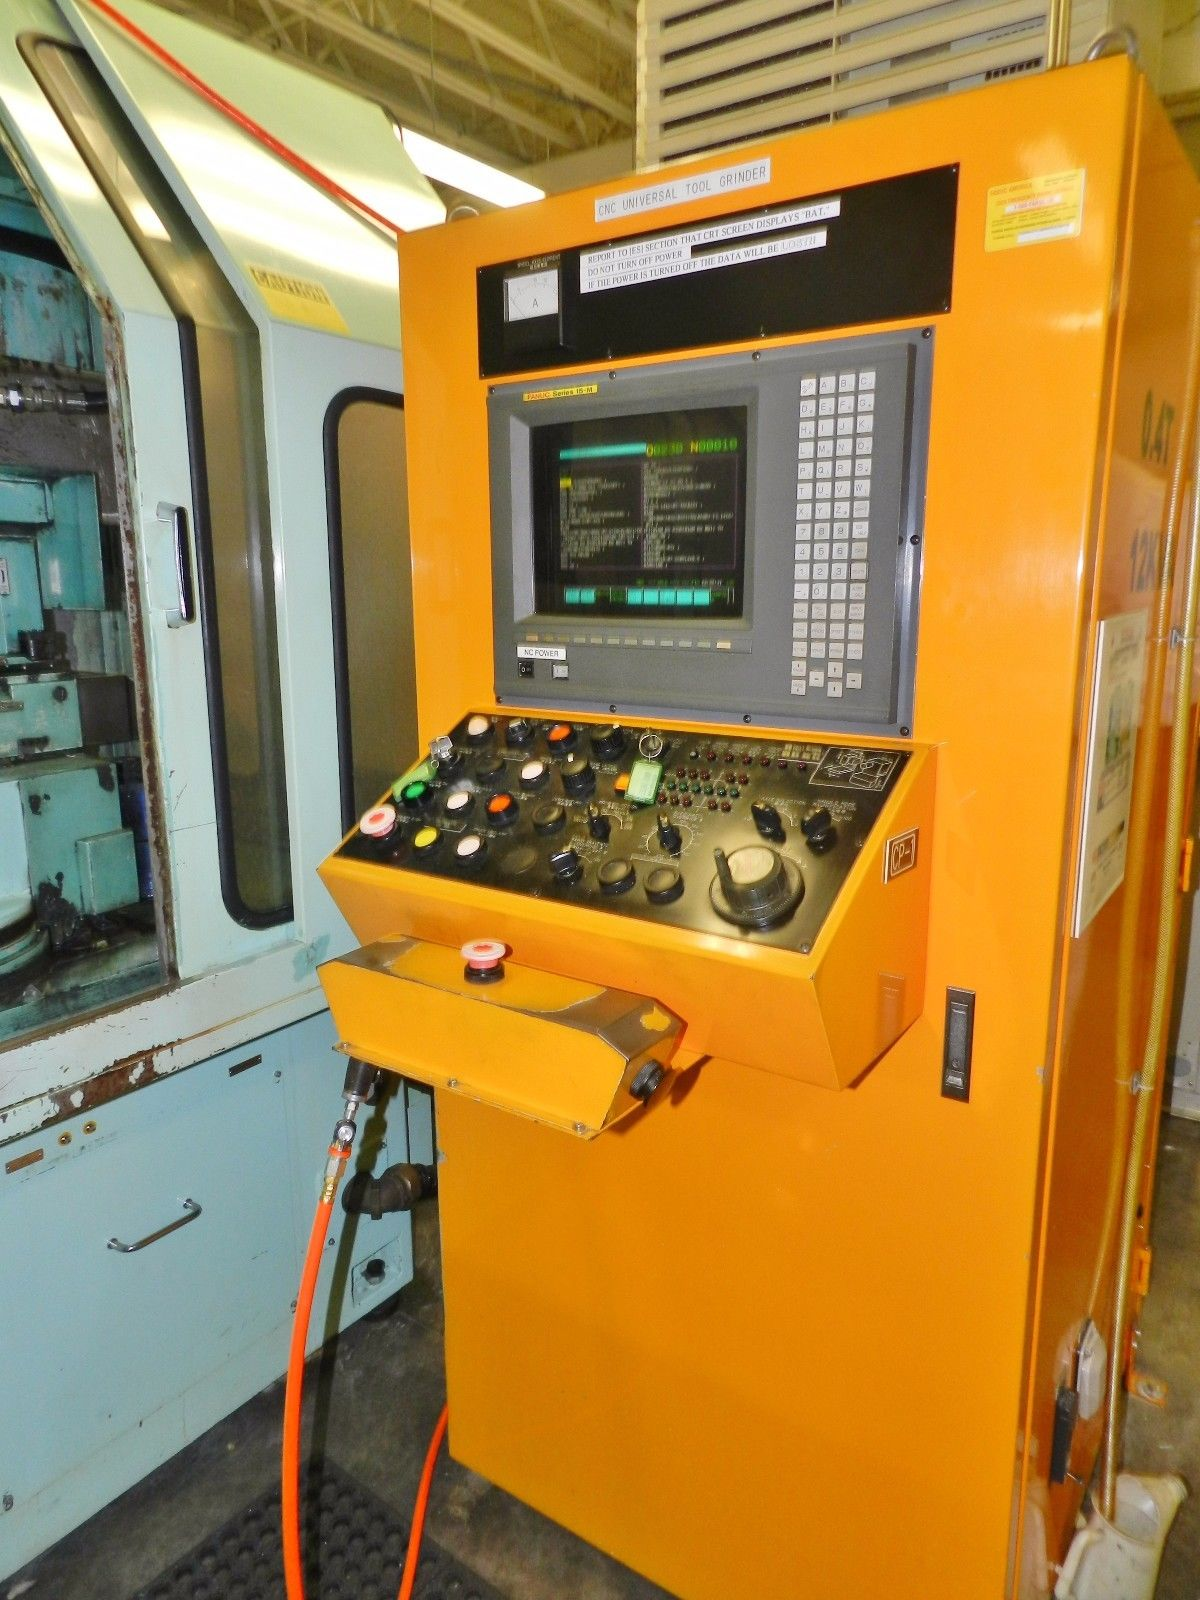 Lot 25 - 6-Axis CNC Tool Cutter Machine w/Fanuc Control